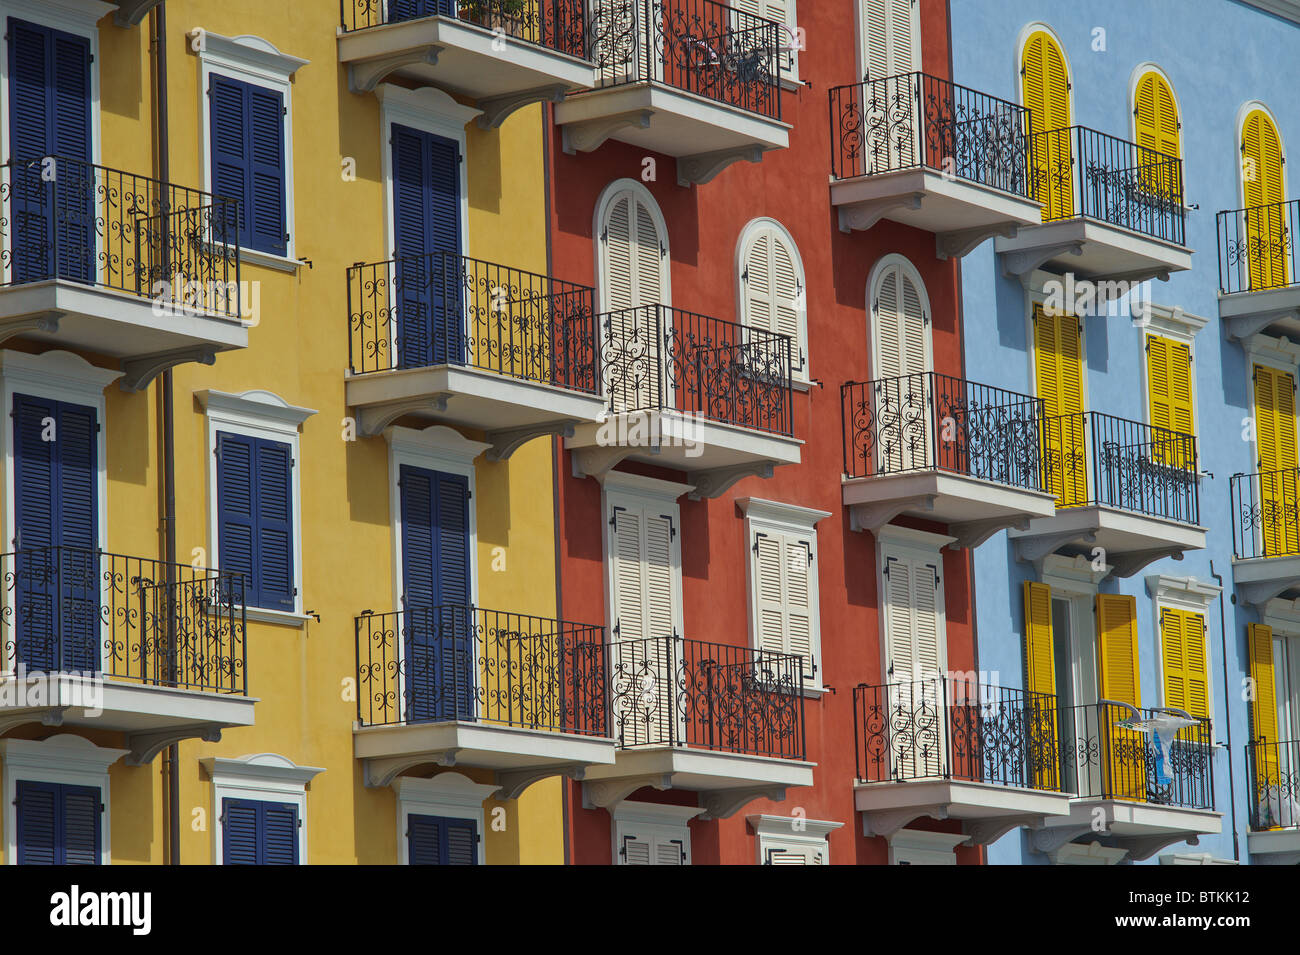 Attractive Giro Du0027italia Italy Porto Recanati Apartment Buildings   Stock Image